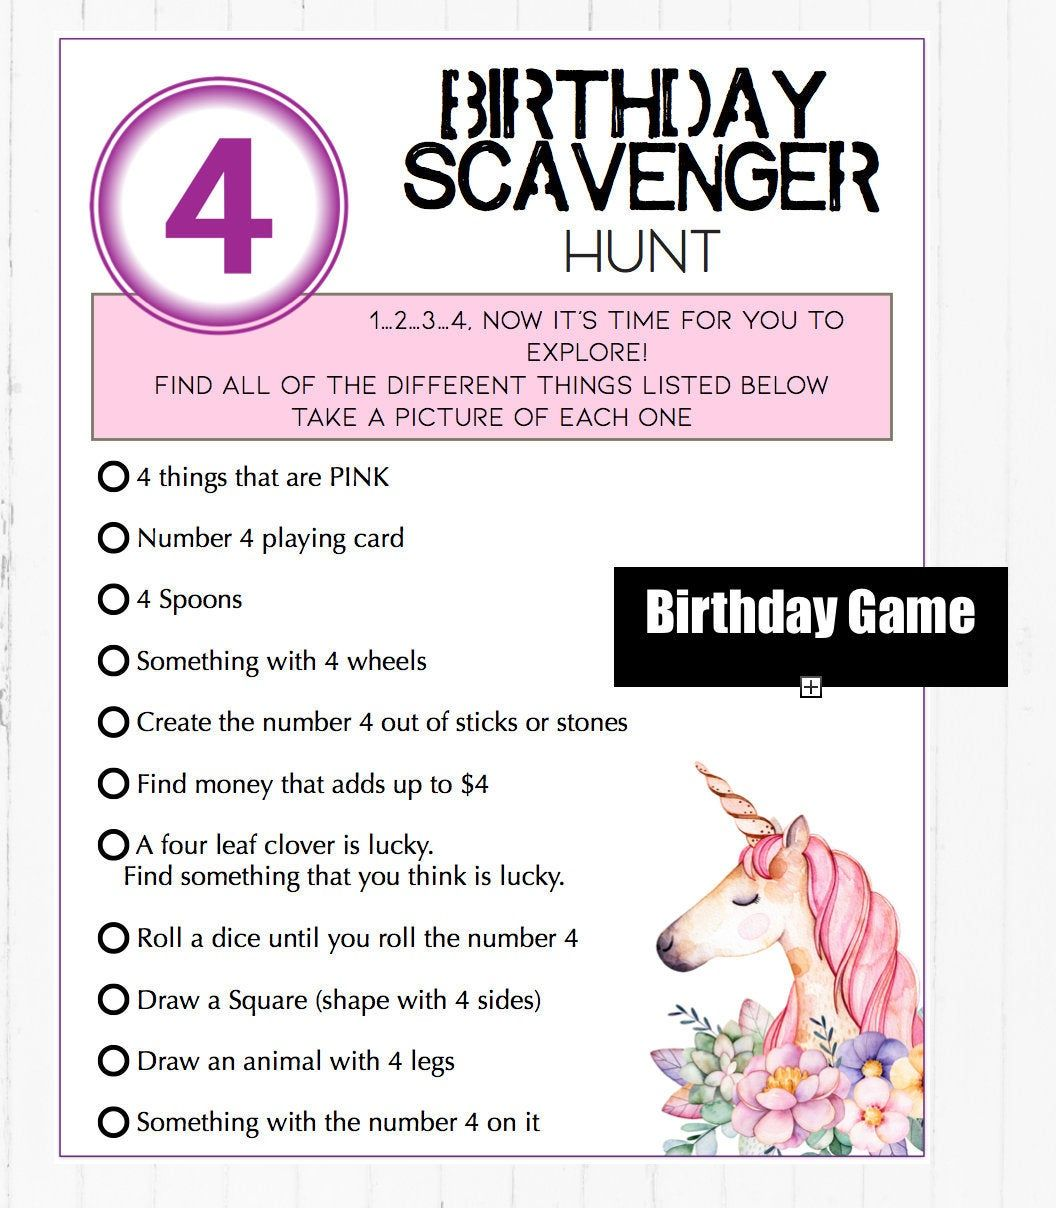 At home birthday scavenger hunt game play with family or ...